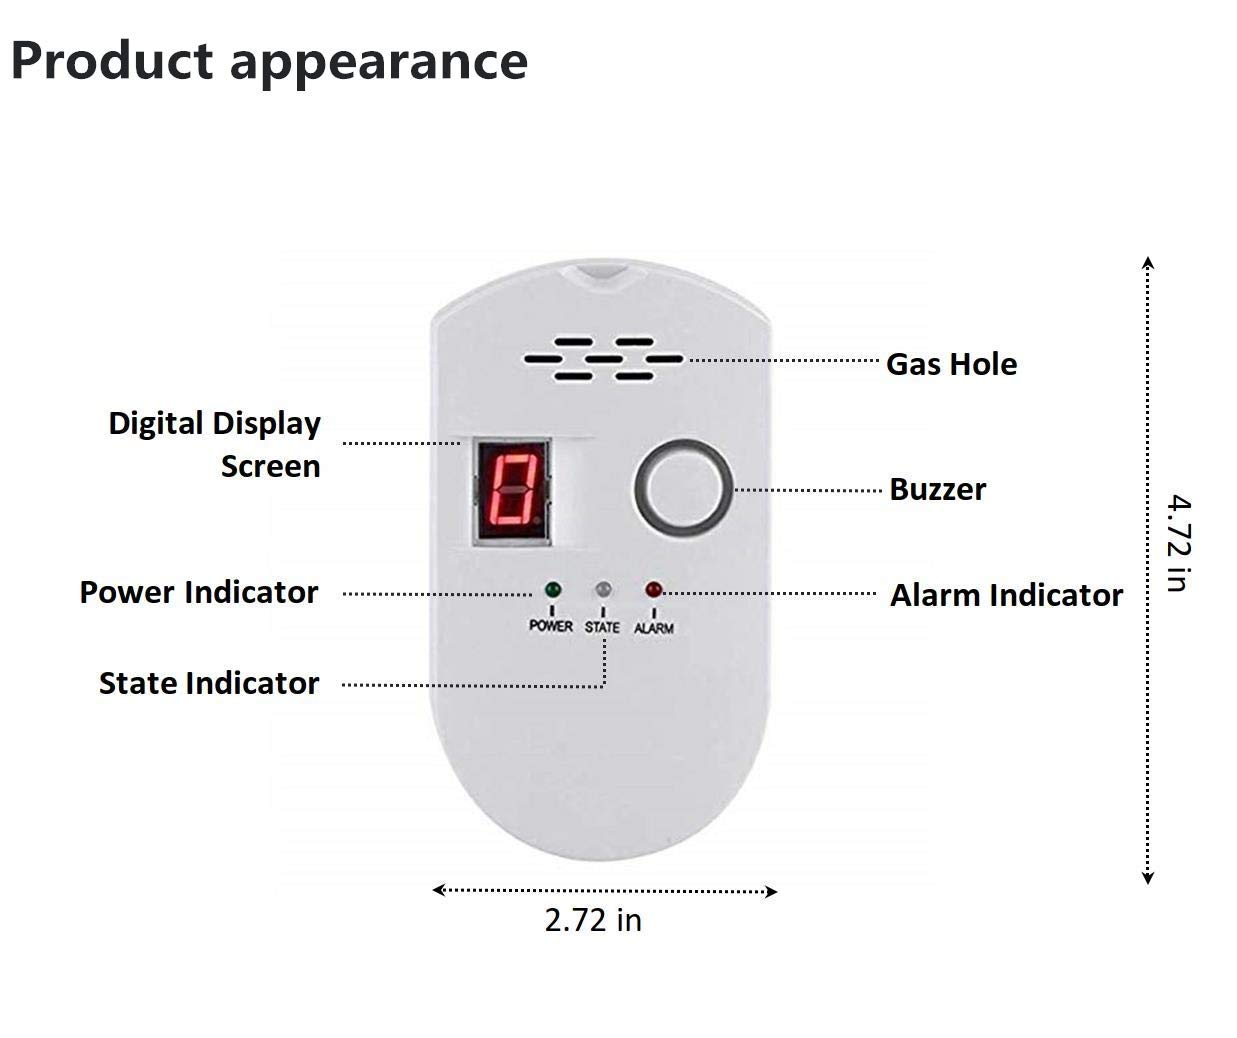 2019 New Propane/Natural Digital Gas Detector, Home Gas Alarm, Gas Leak  Detector,High Sensitivity LPG LNG Coal Natural Gas Leak Detection, Alarm